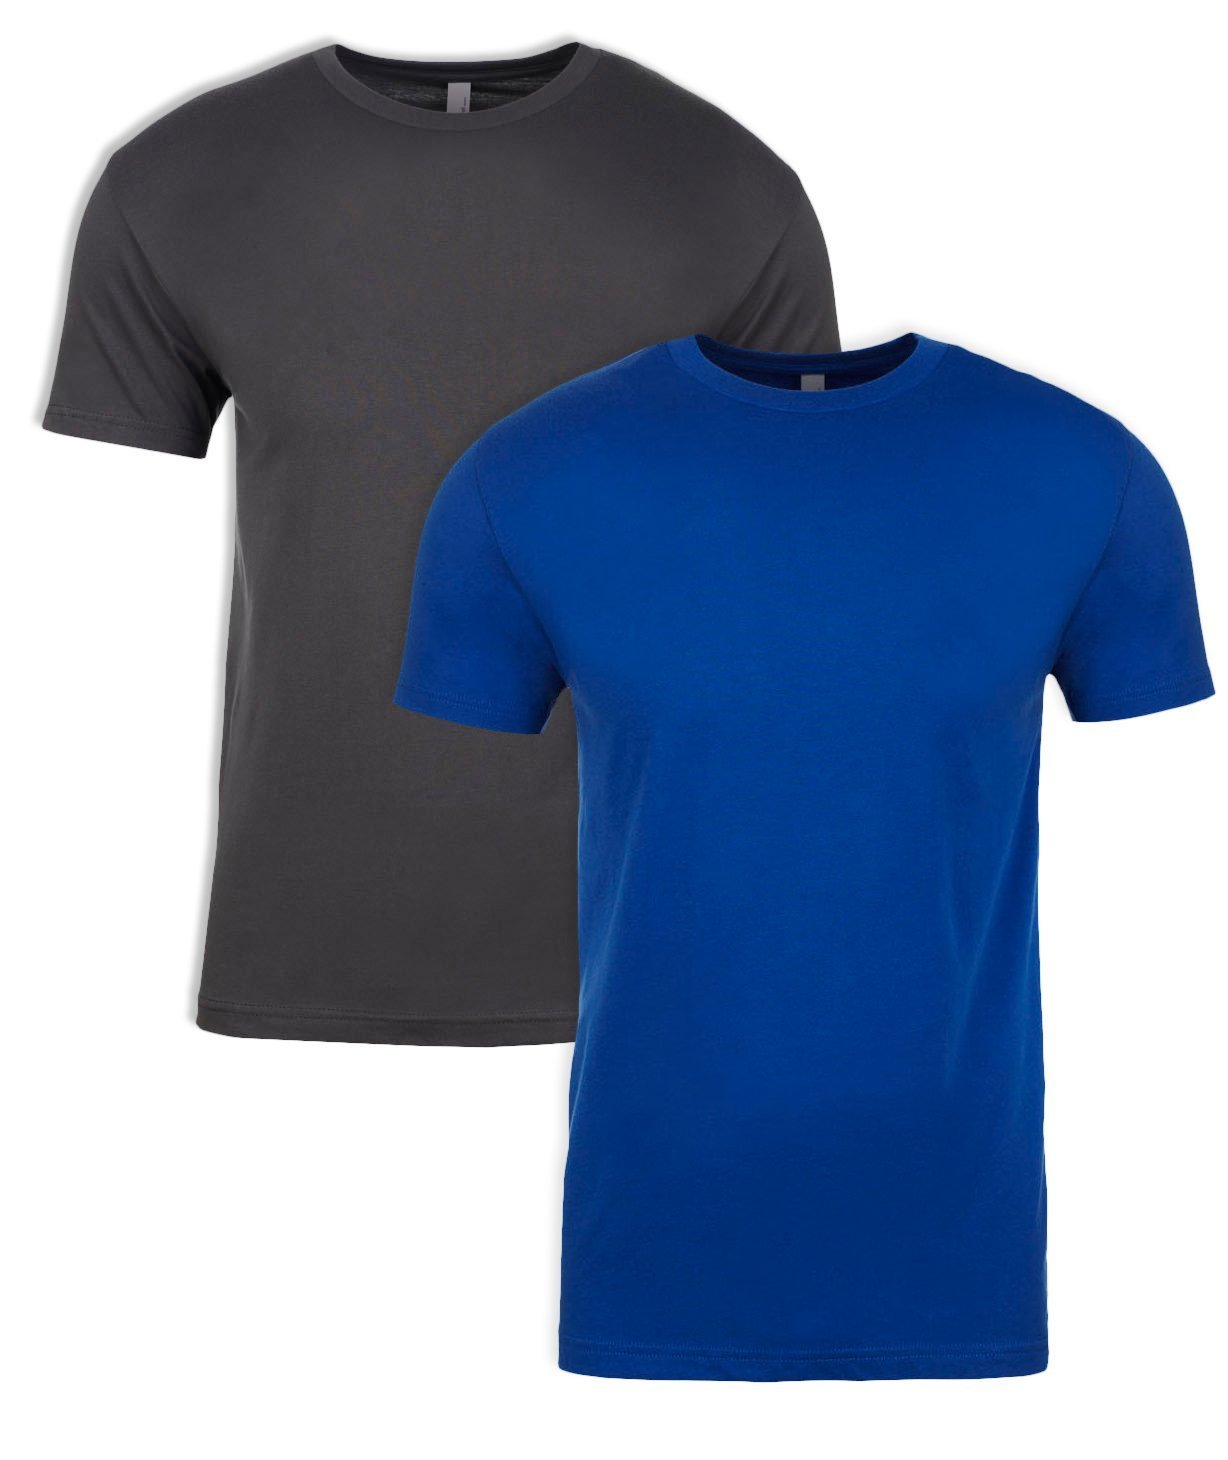 T shirt plain white front and back - Amazon Com Next Level Mens Premium Fitted Short Sleeve Crew T Shirt Sports Outdoors